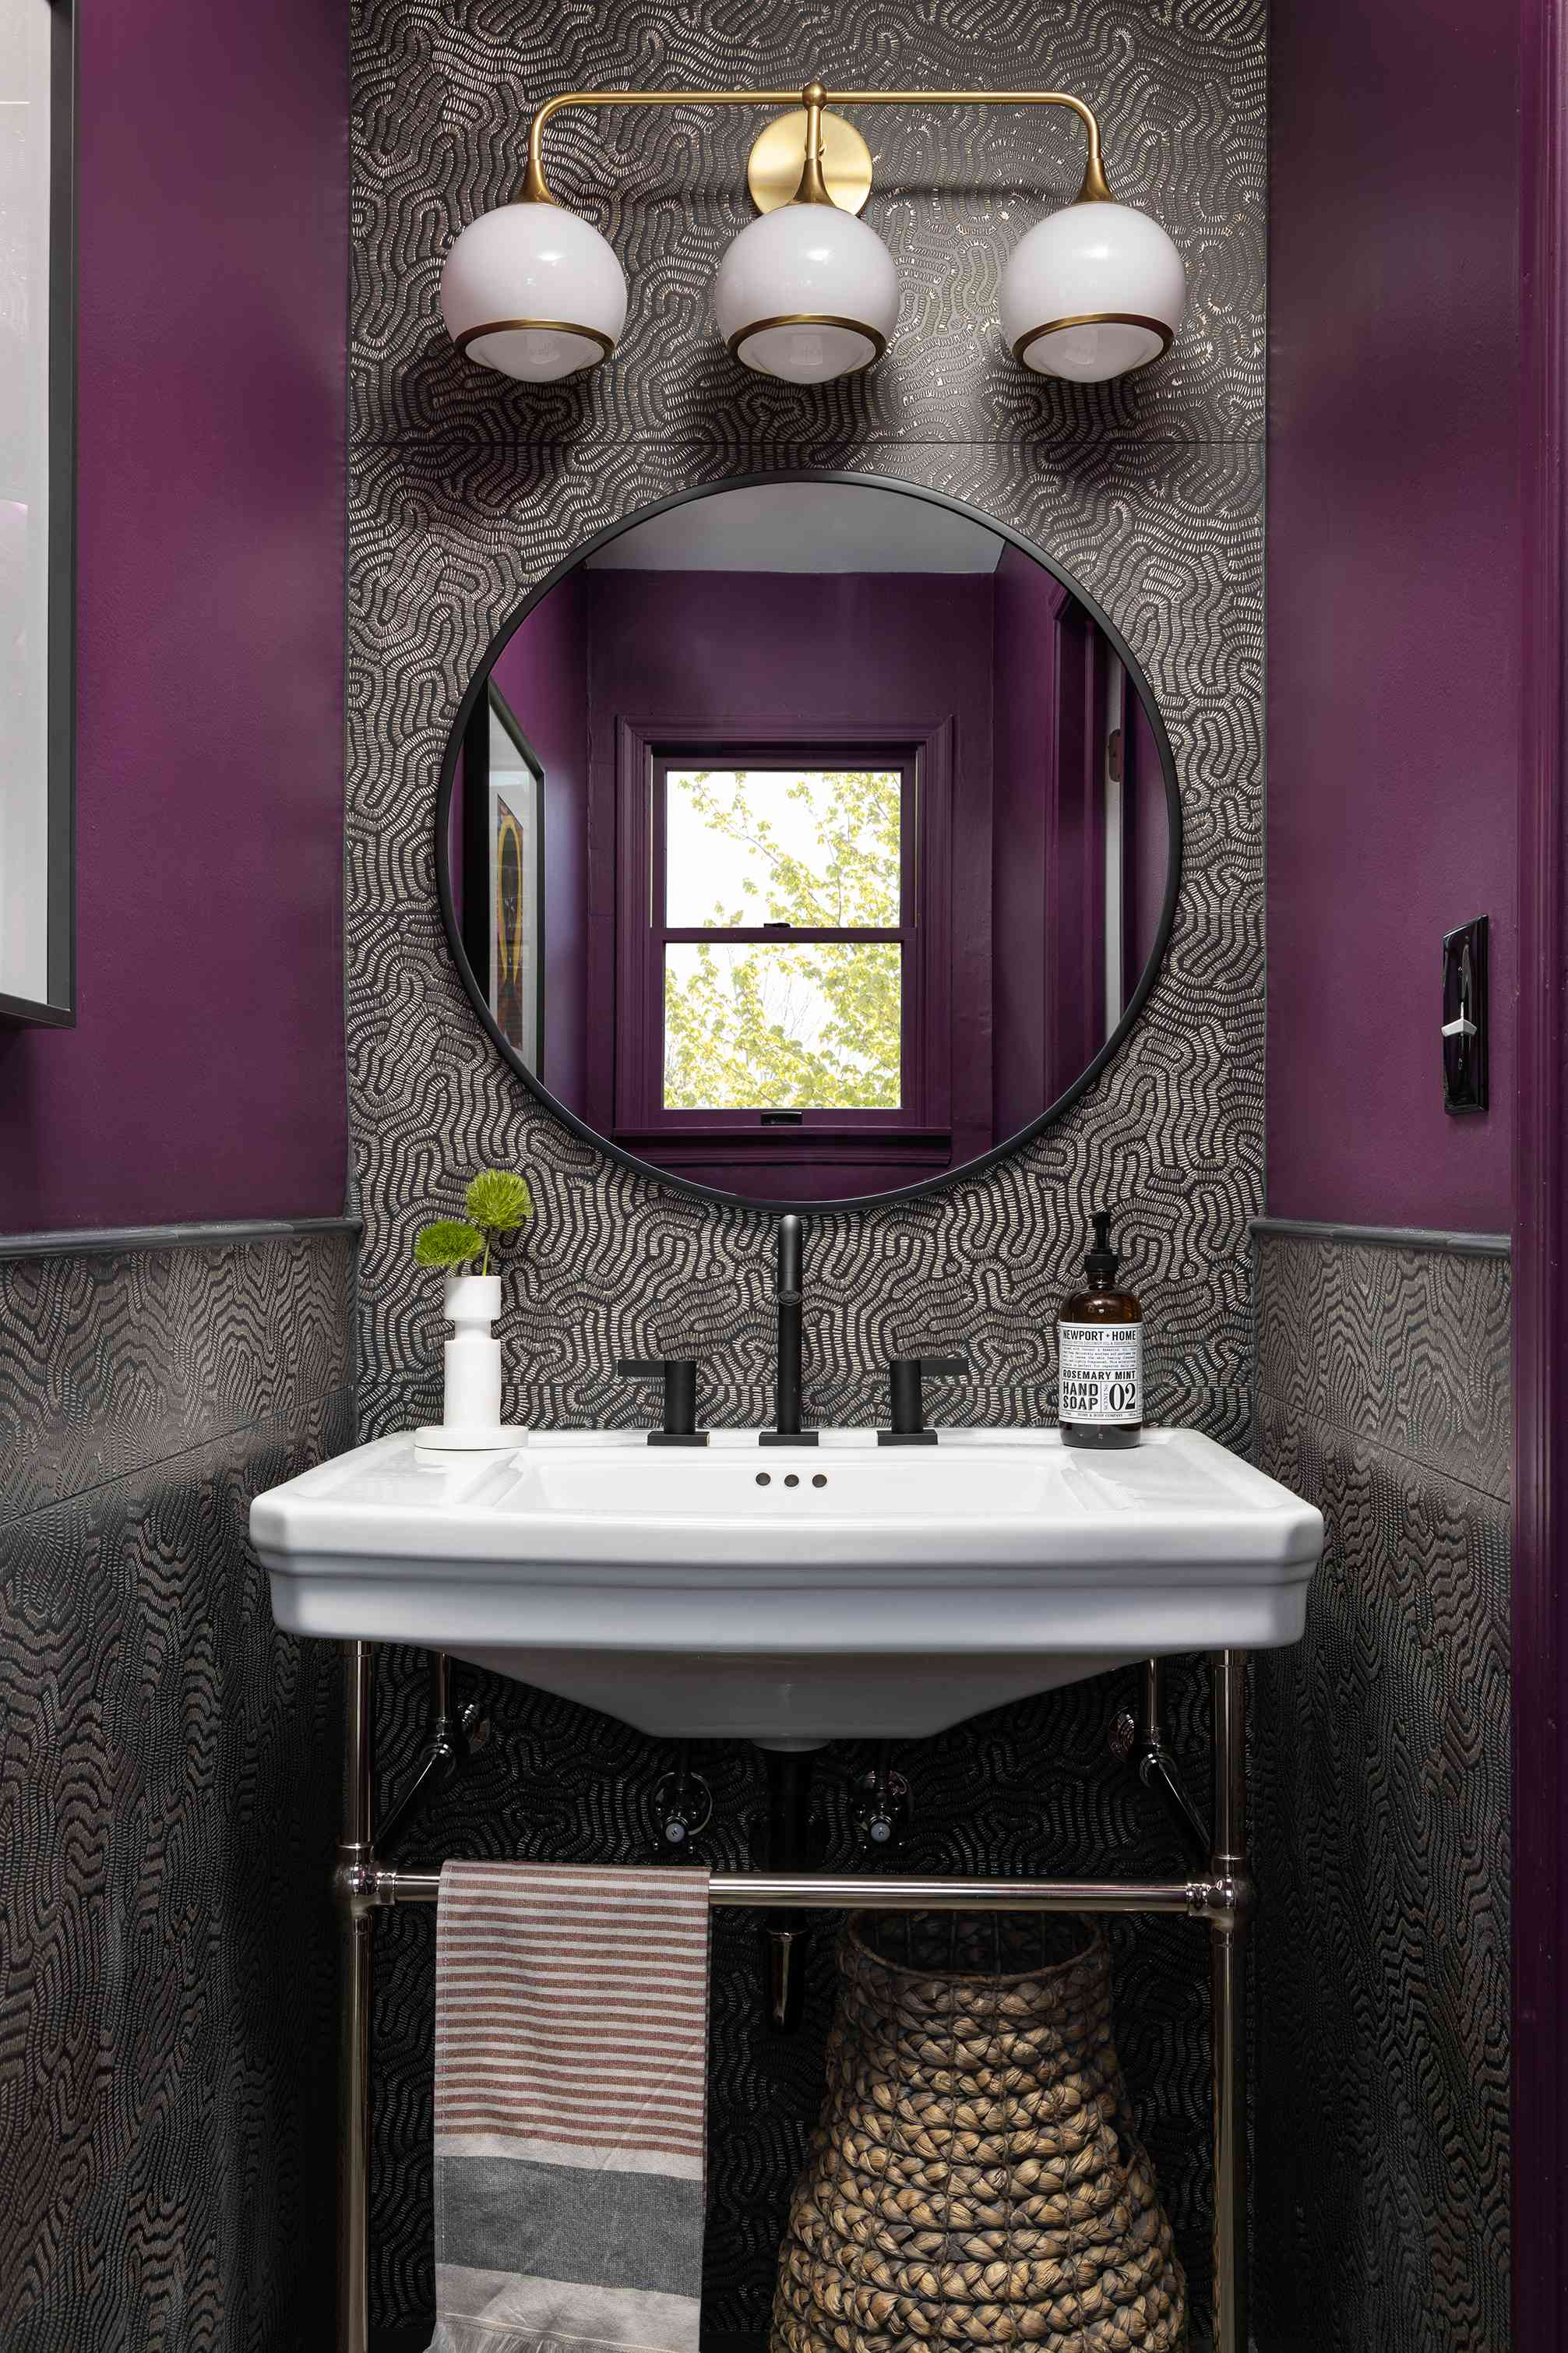 Beth Diana Smith's stunning powder room features textured tiles, purple paint, and a round mirror